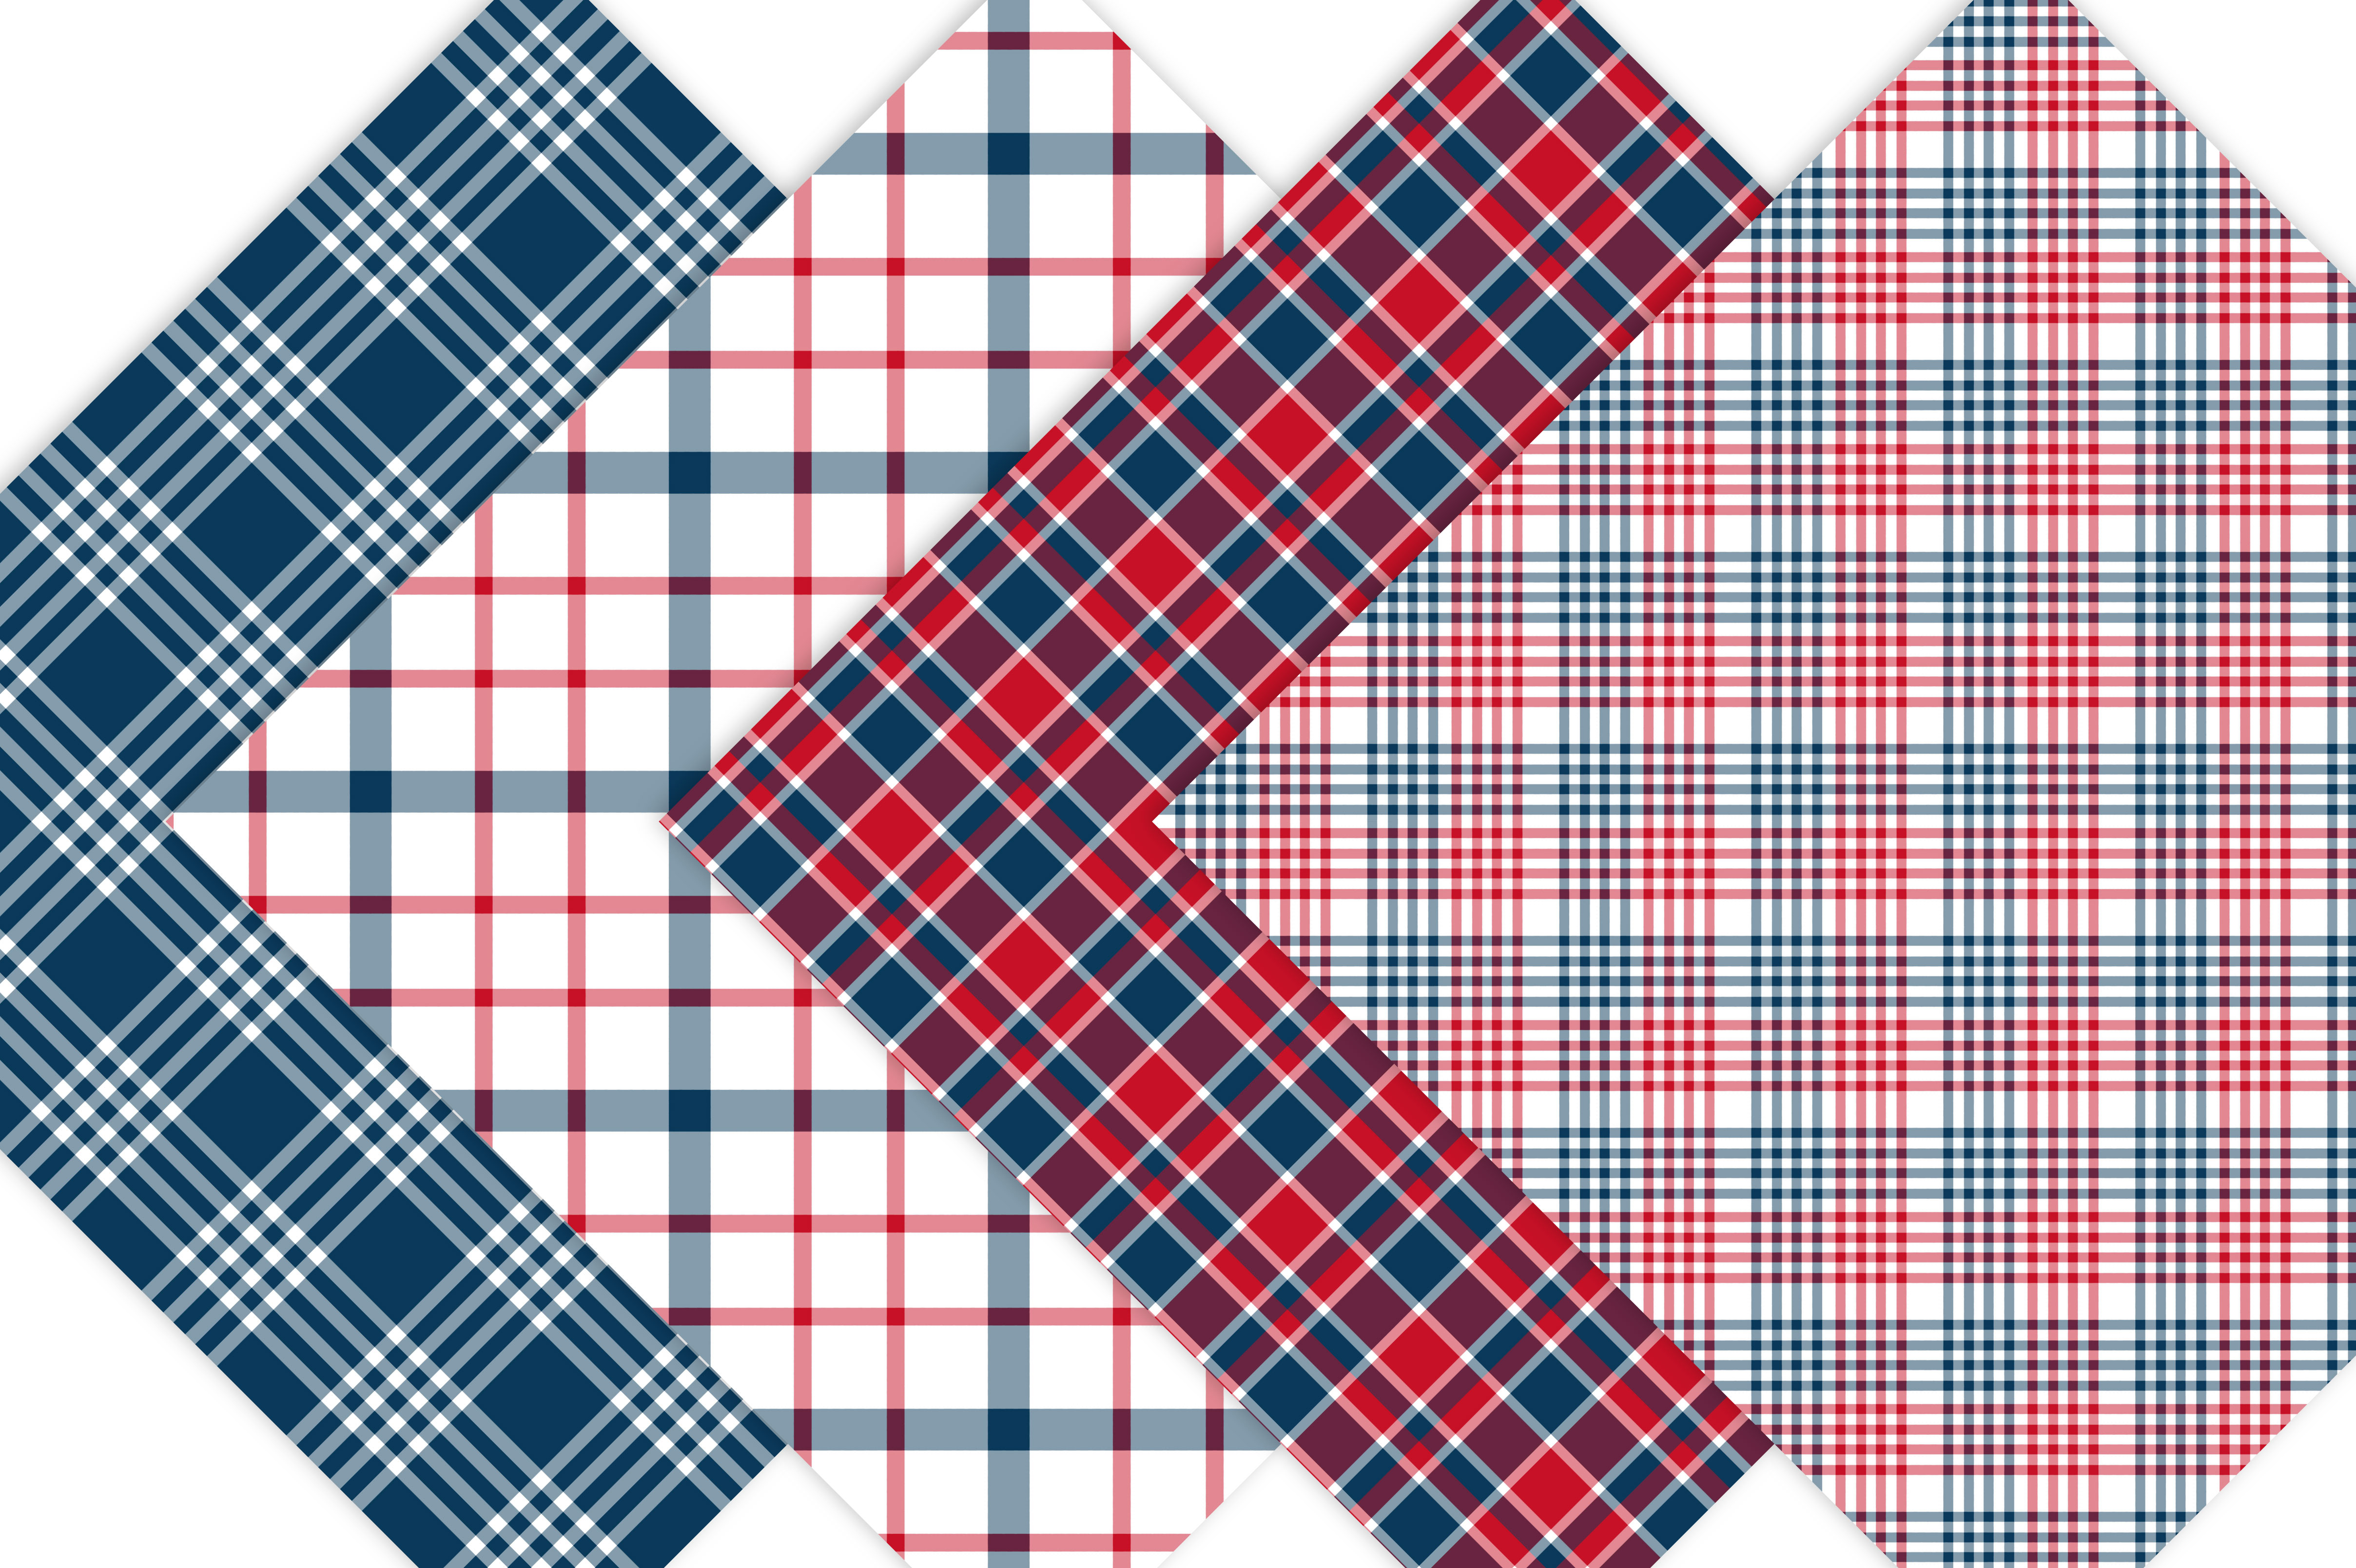 Red White and Blue Plaid Patterns example image 2